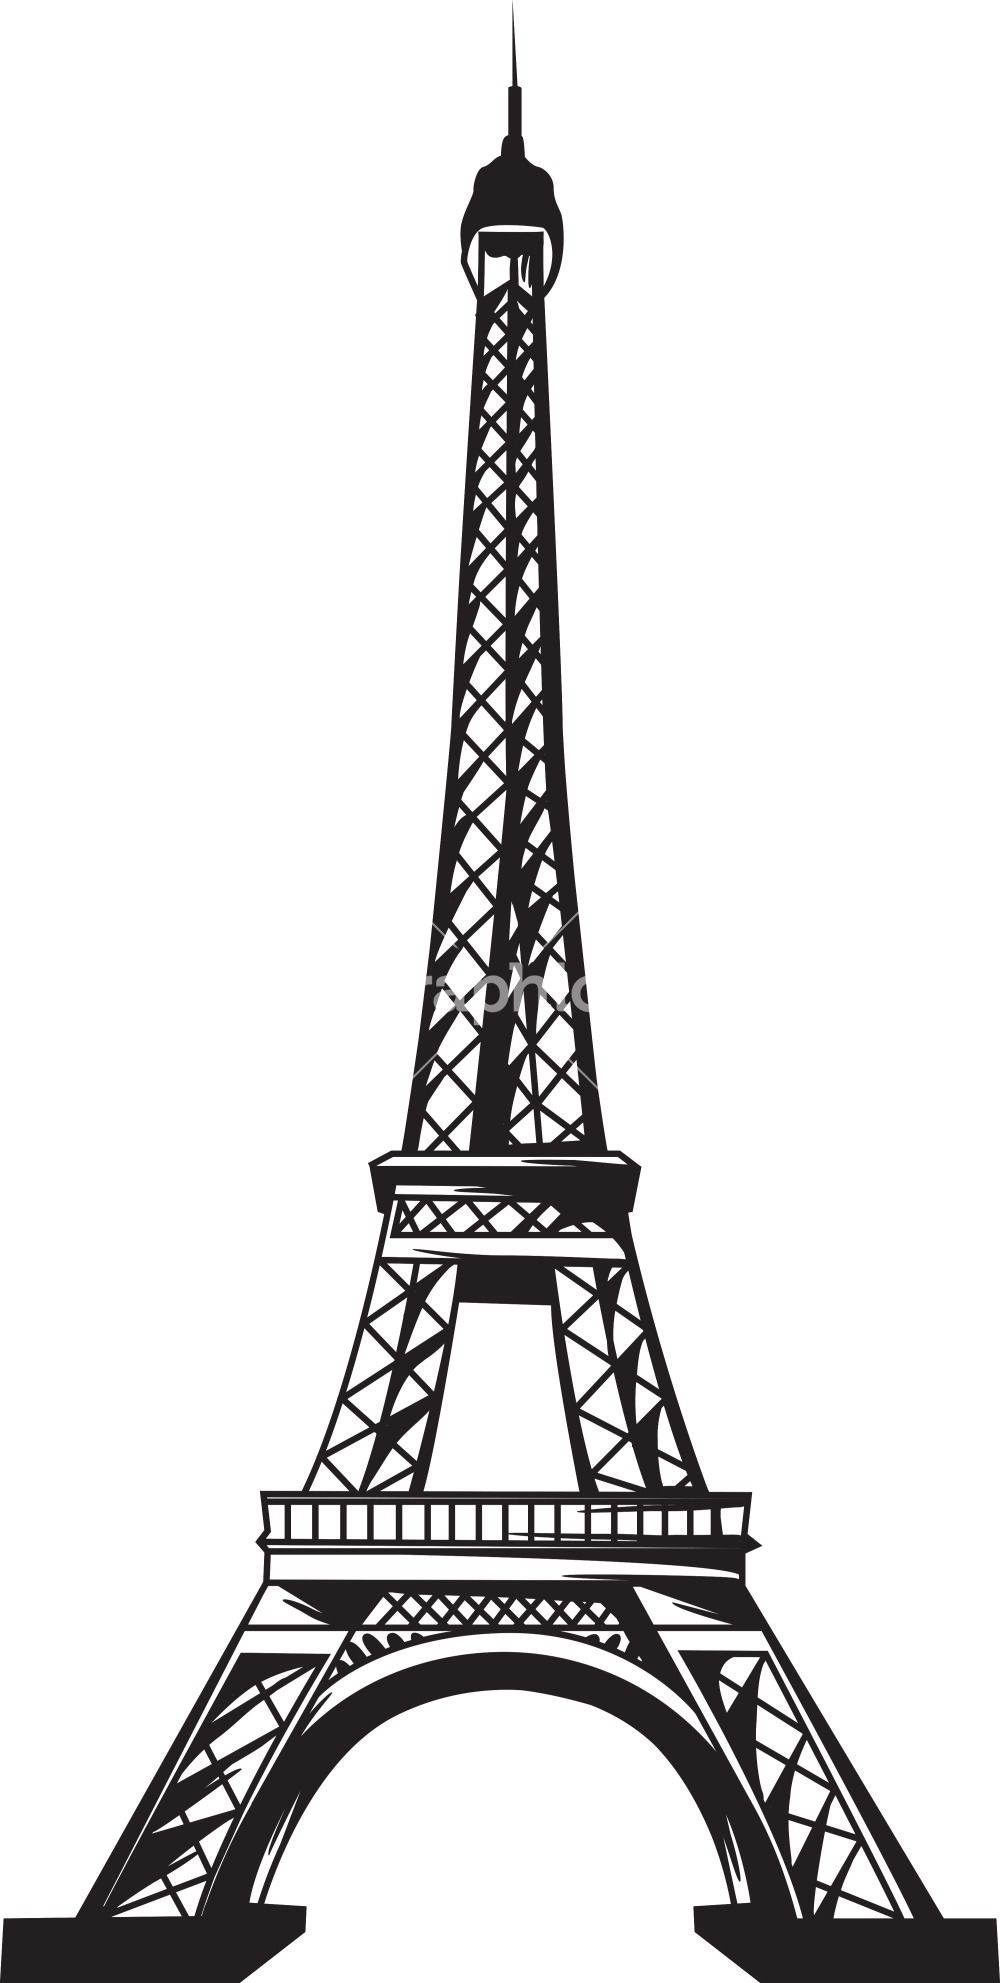 Pin By Xiomara Figueroa On 15 Gracia Eiffel Tower Drawing Eiffel Tower Art Eiffel Tower Clip Art